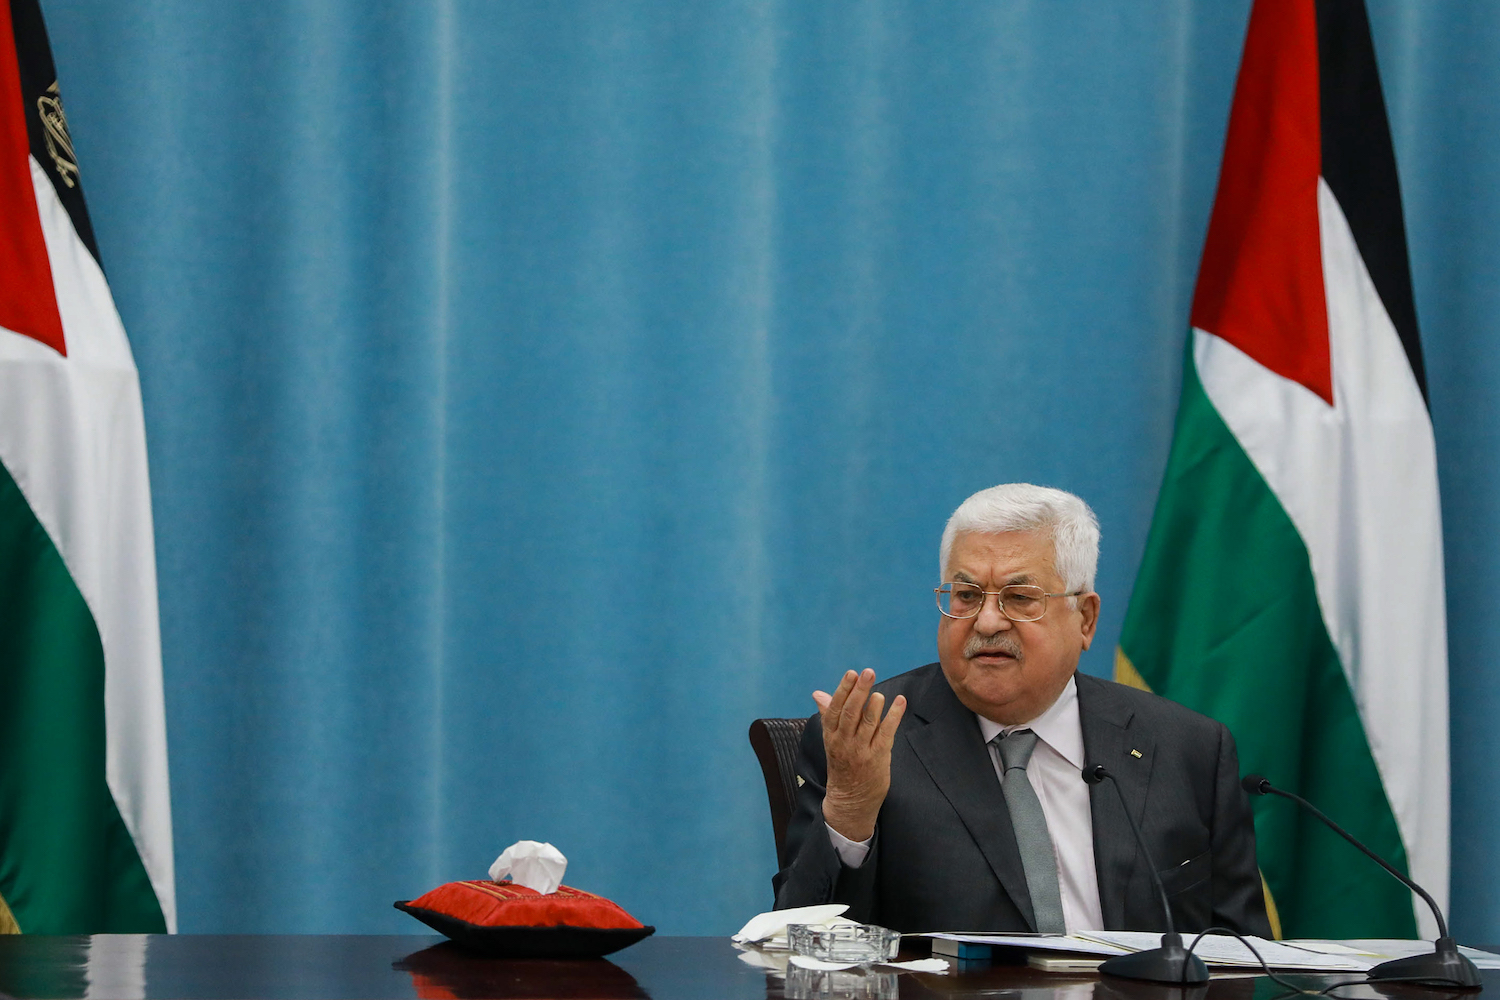 Palestinian president Mahmoud Abbas speaks during a meeting of the Palestinian leadership in the West Bank city of Ramallah, May 7, 2020. (Flash90)